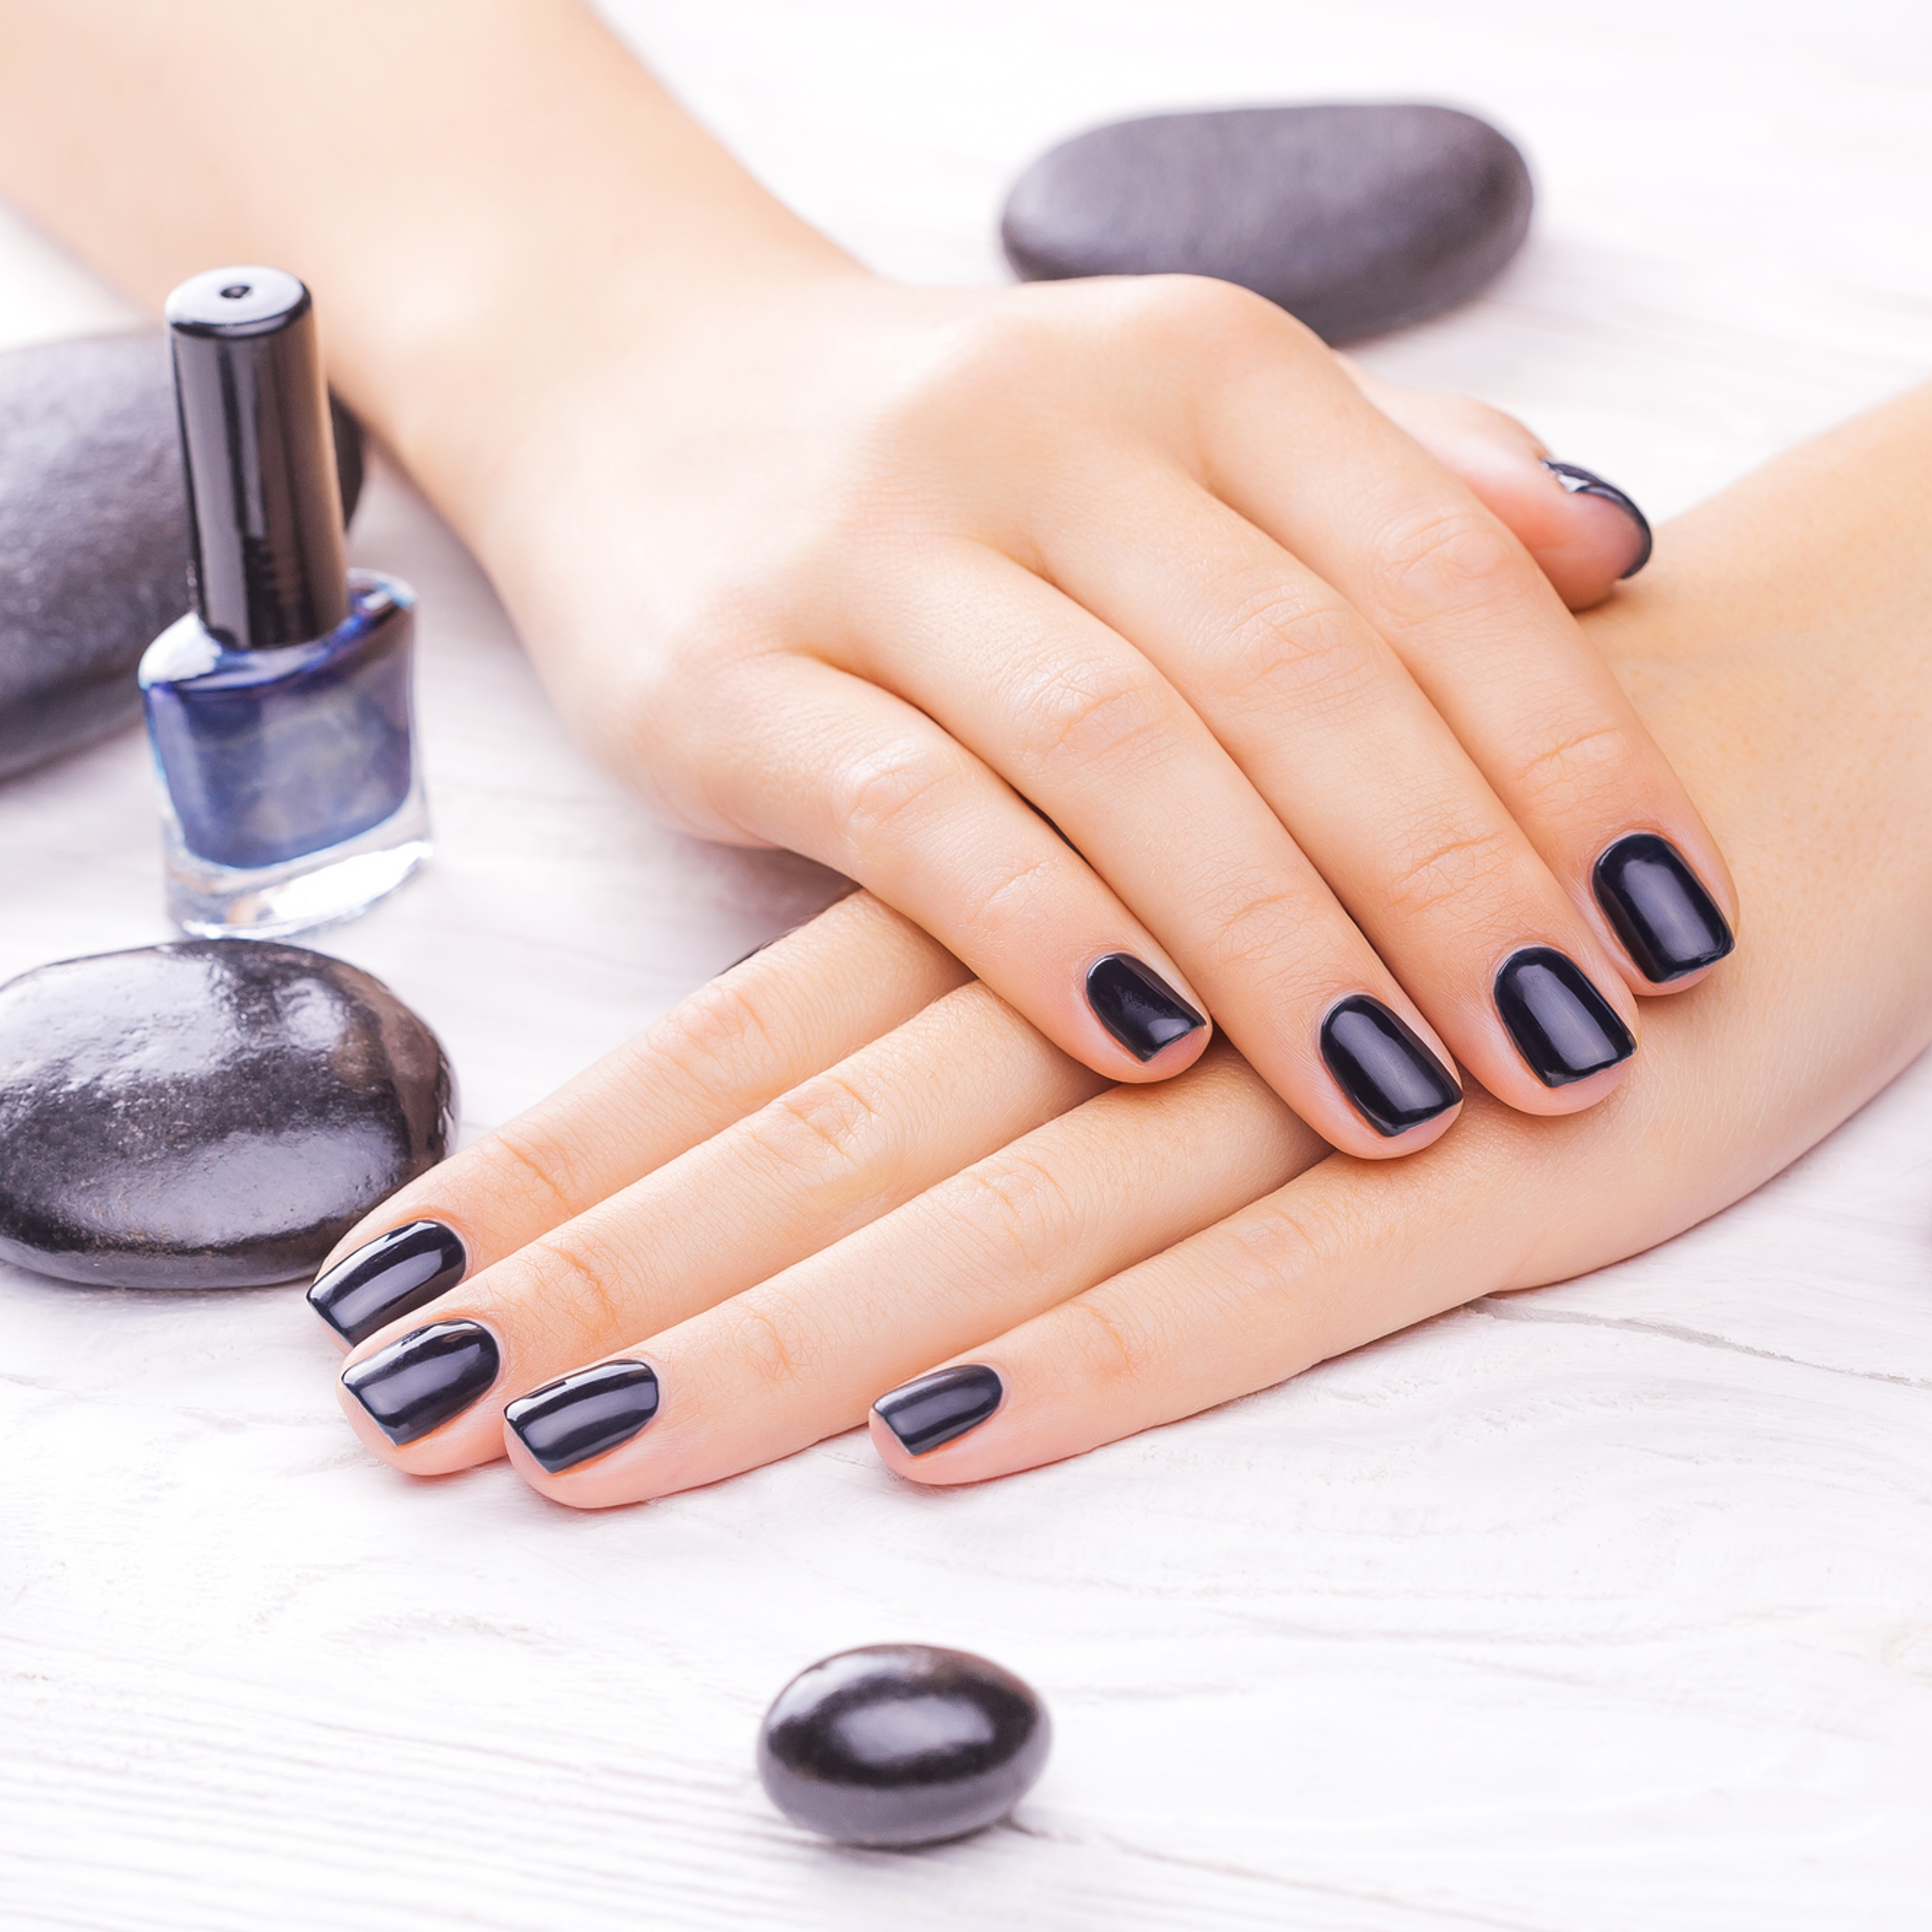 Pedicure and Nail Enhancement